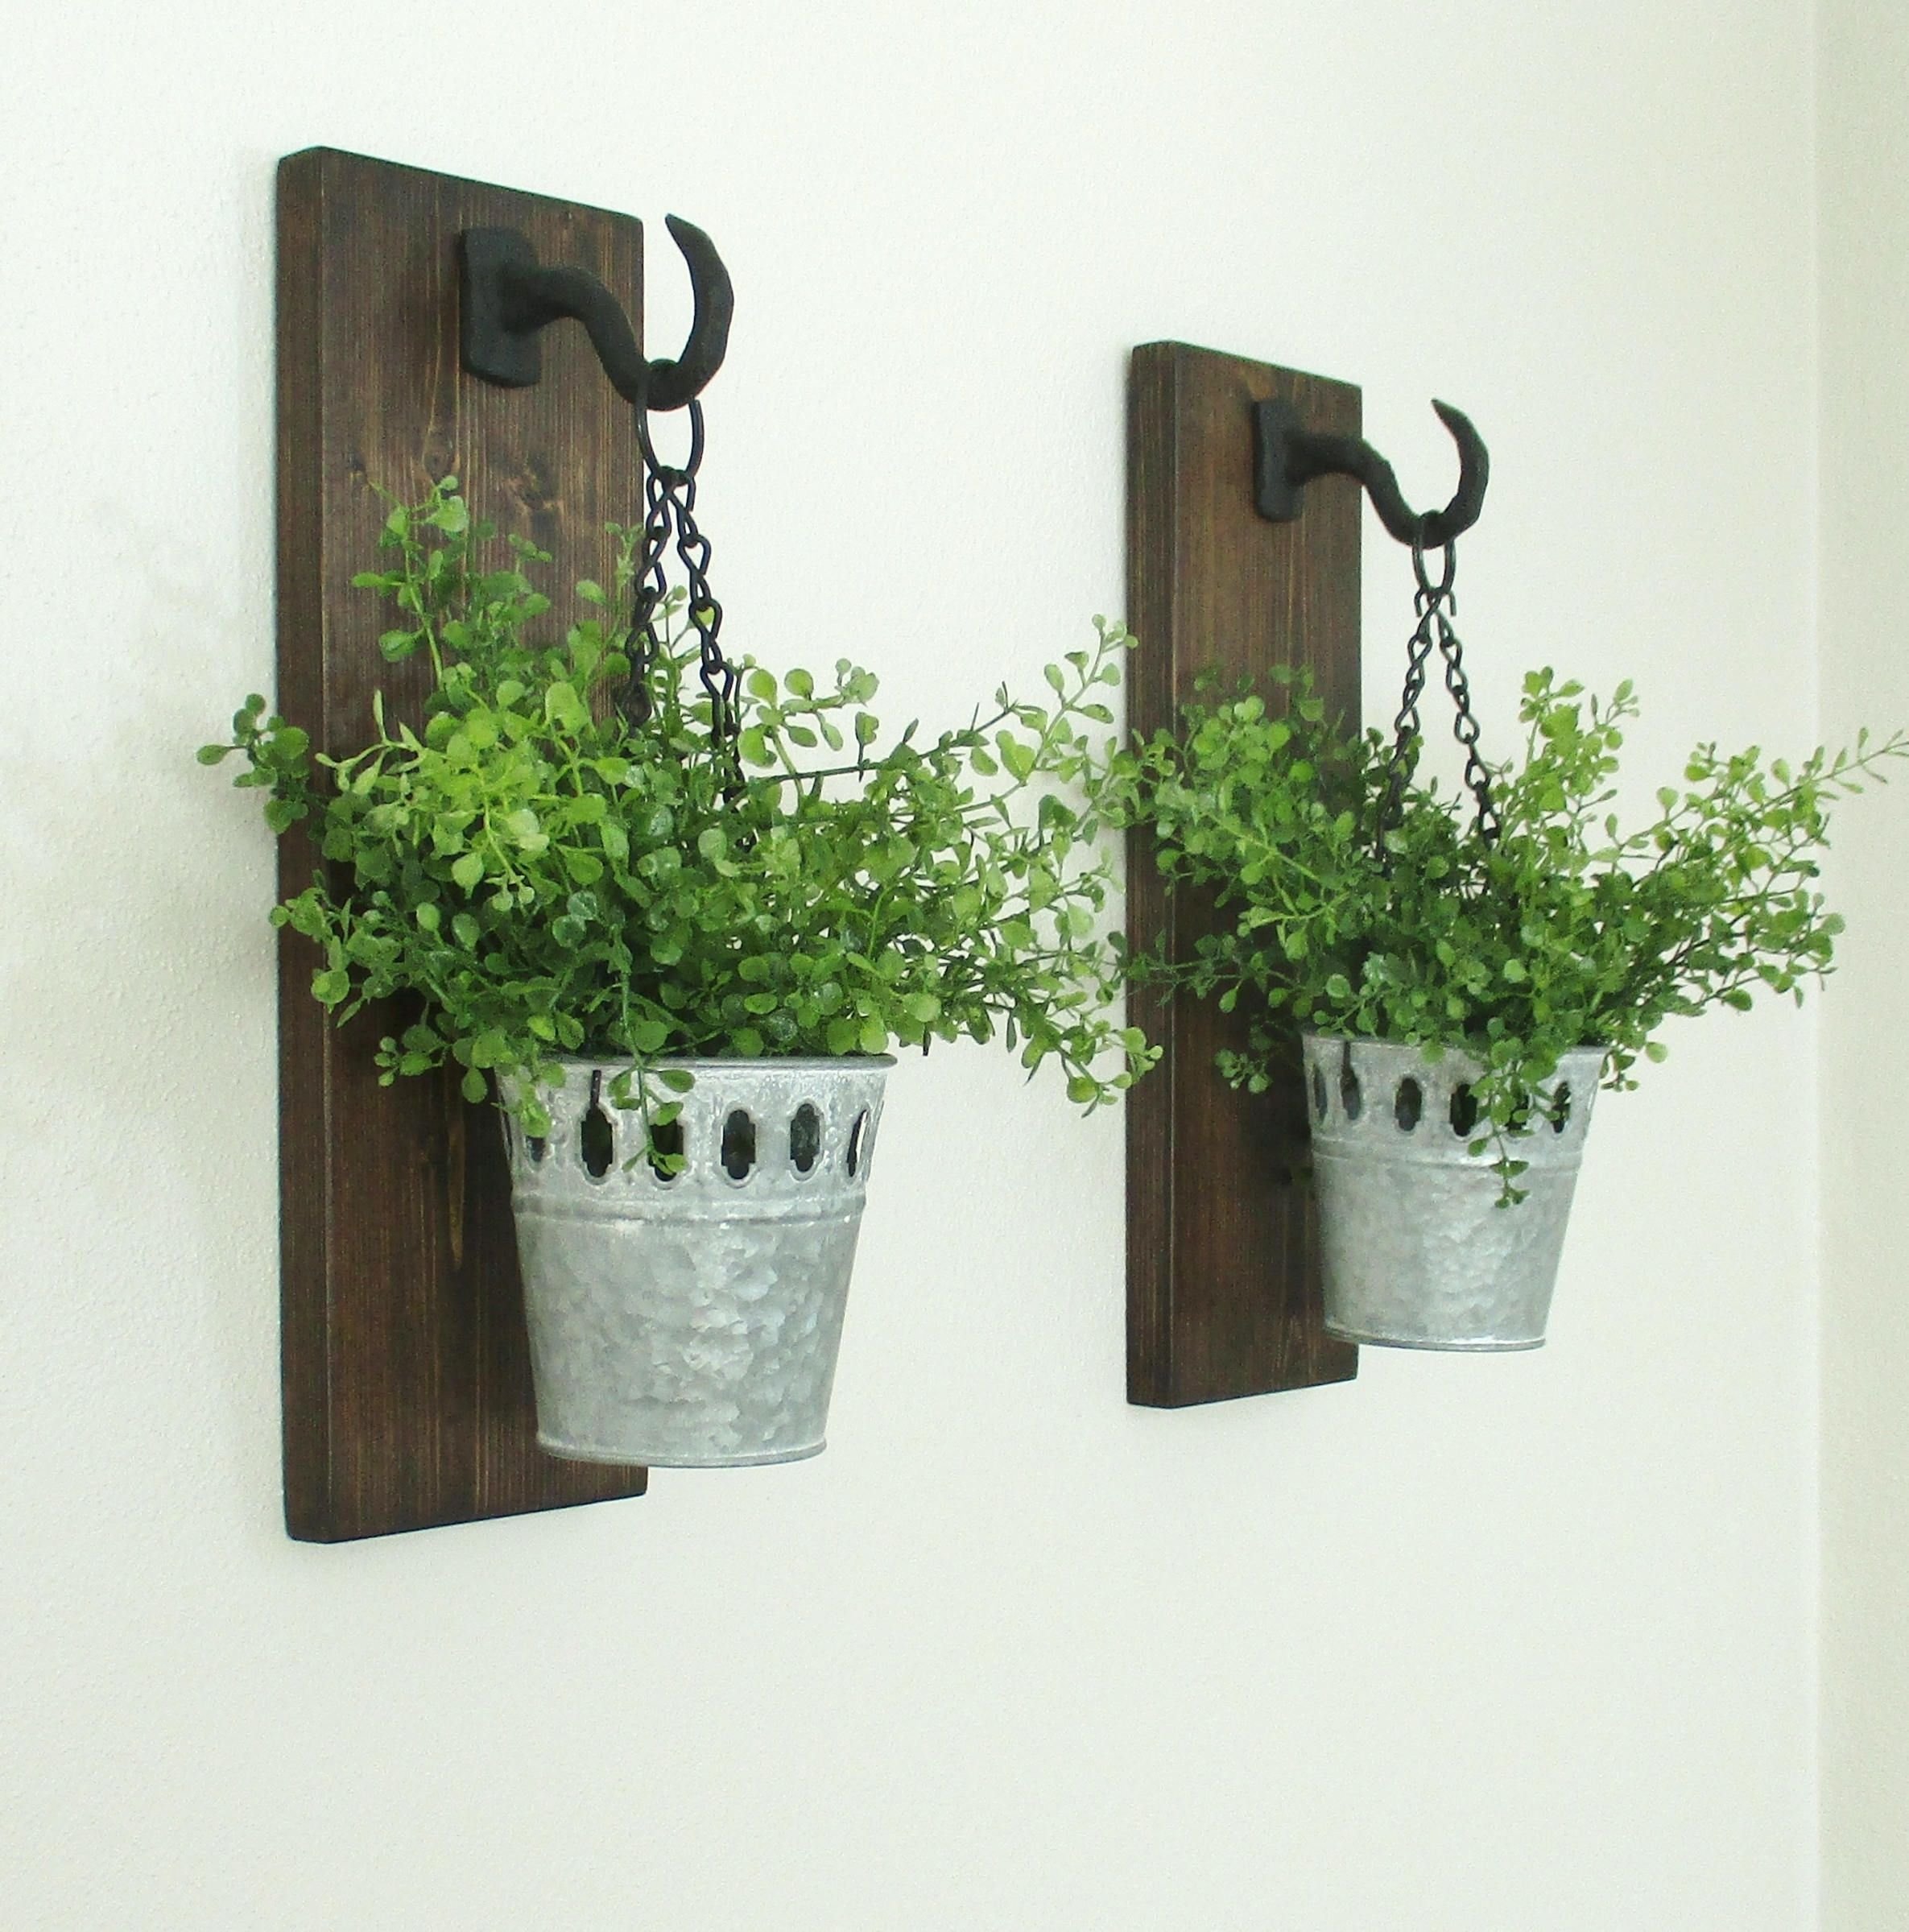 Industrial Farmhouse Wall DecorHanging Galvanized Metal BucketsRustic Sconces